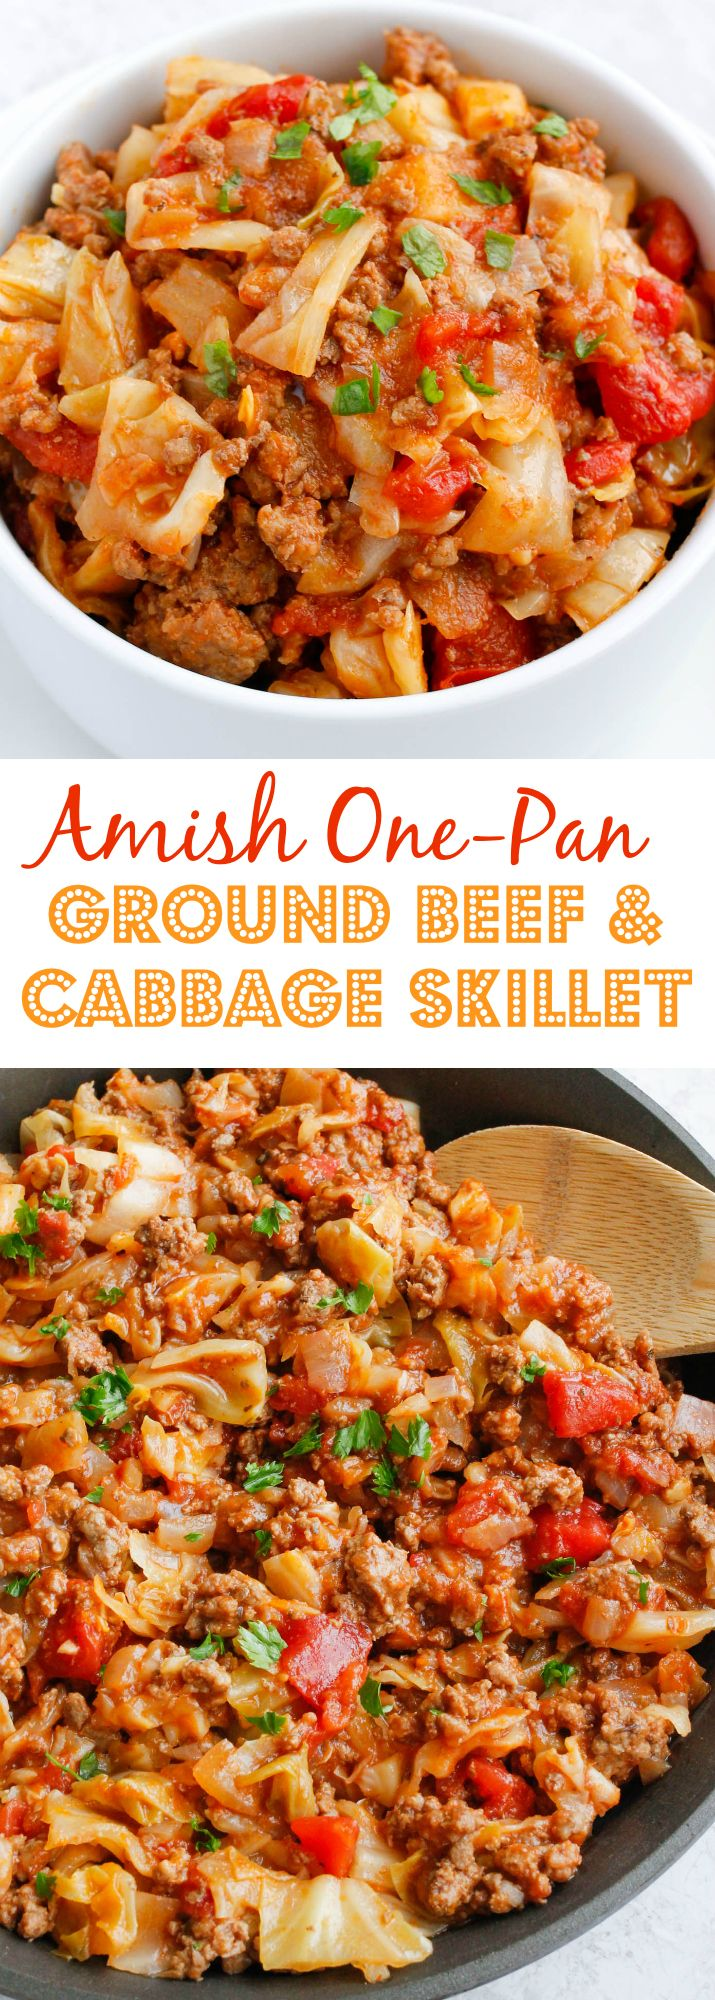 Amish One Pan Ground Beef And Cabbage Skillet Recipe Healthy Beef Recipes Ground Beef And Cabbage Cabbage Recipes